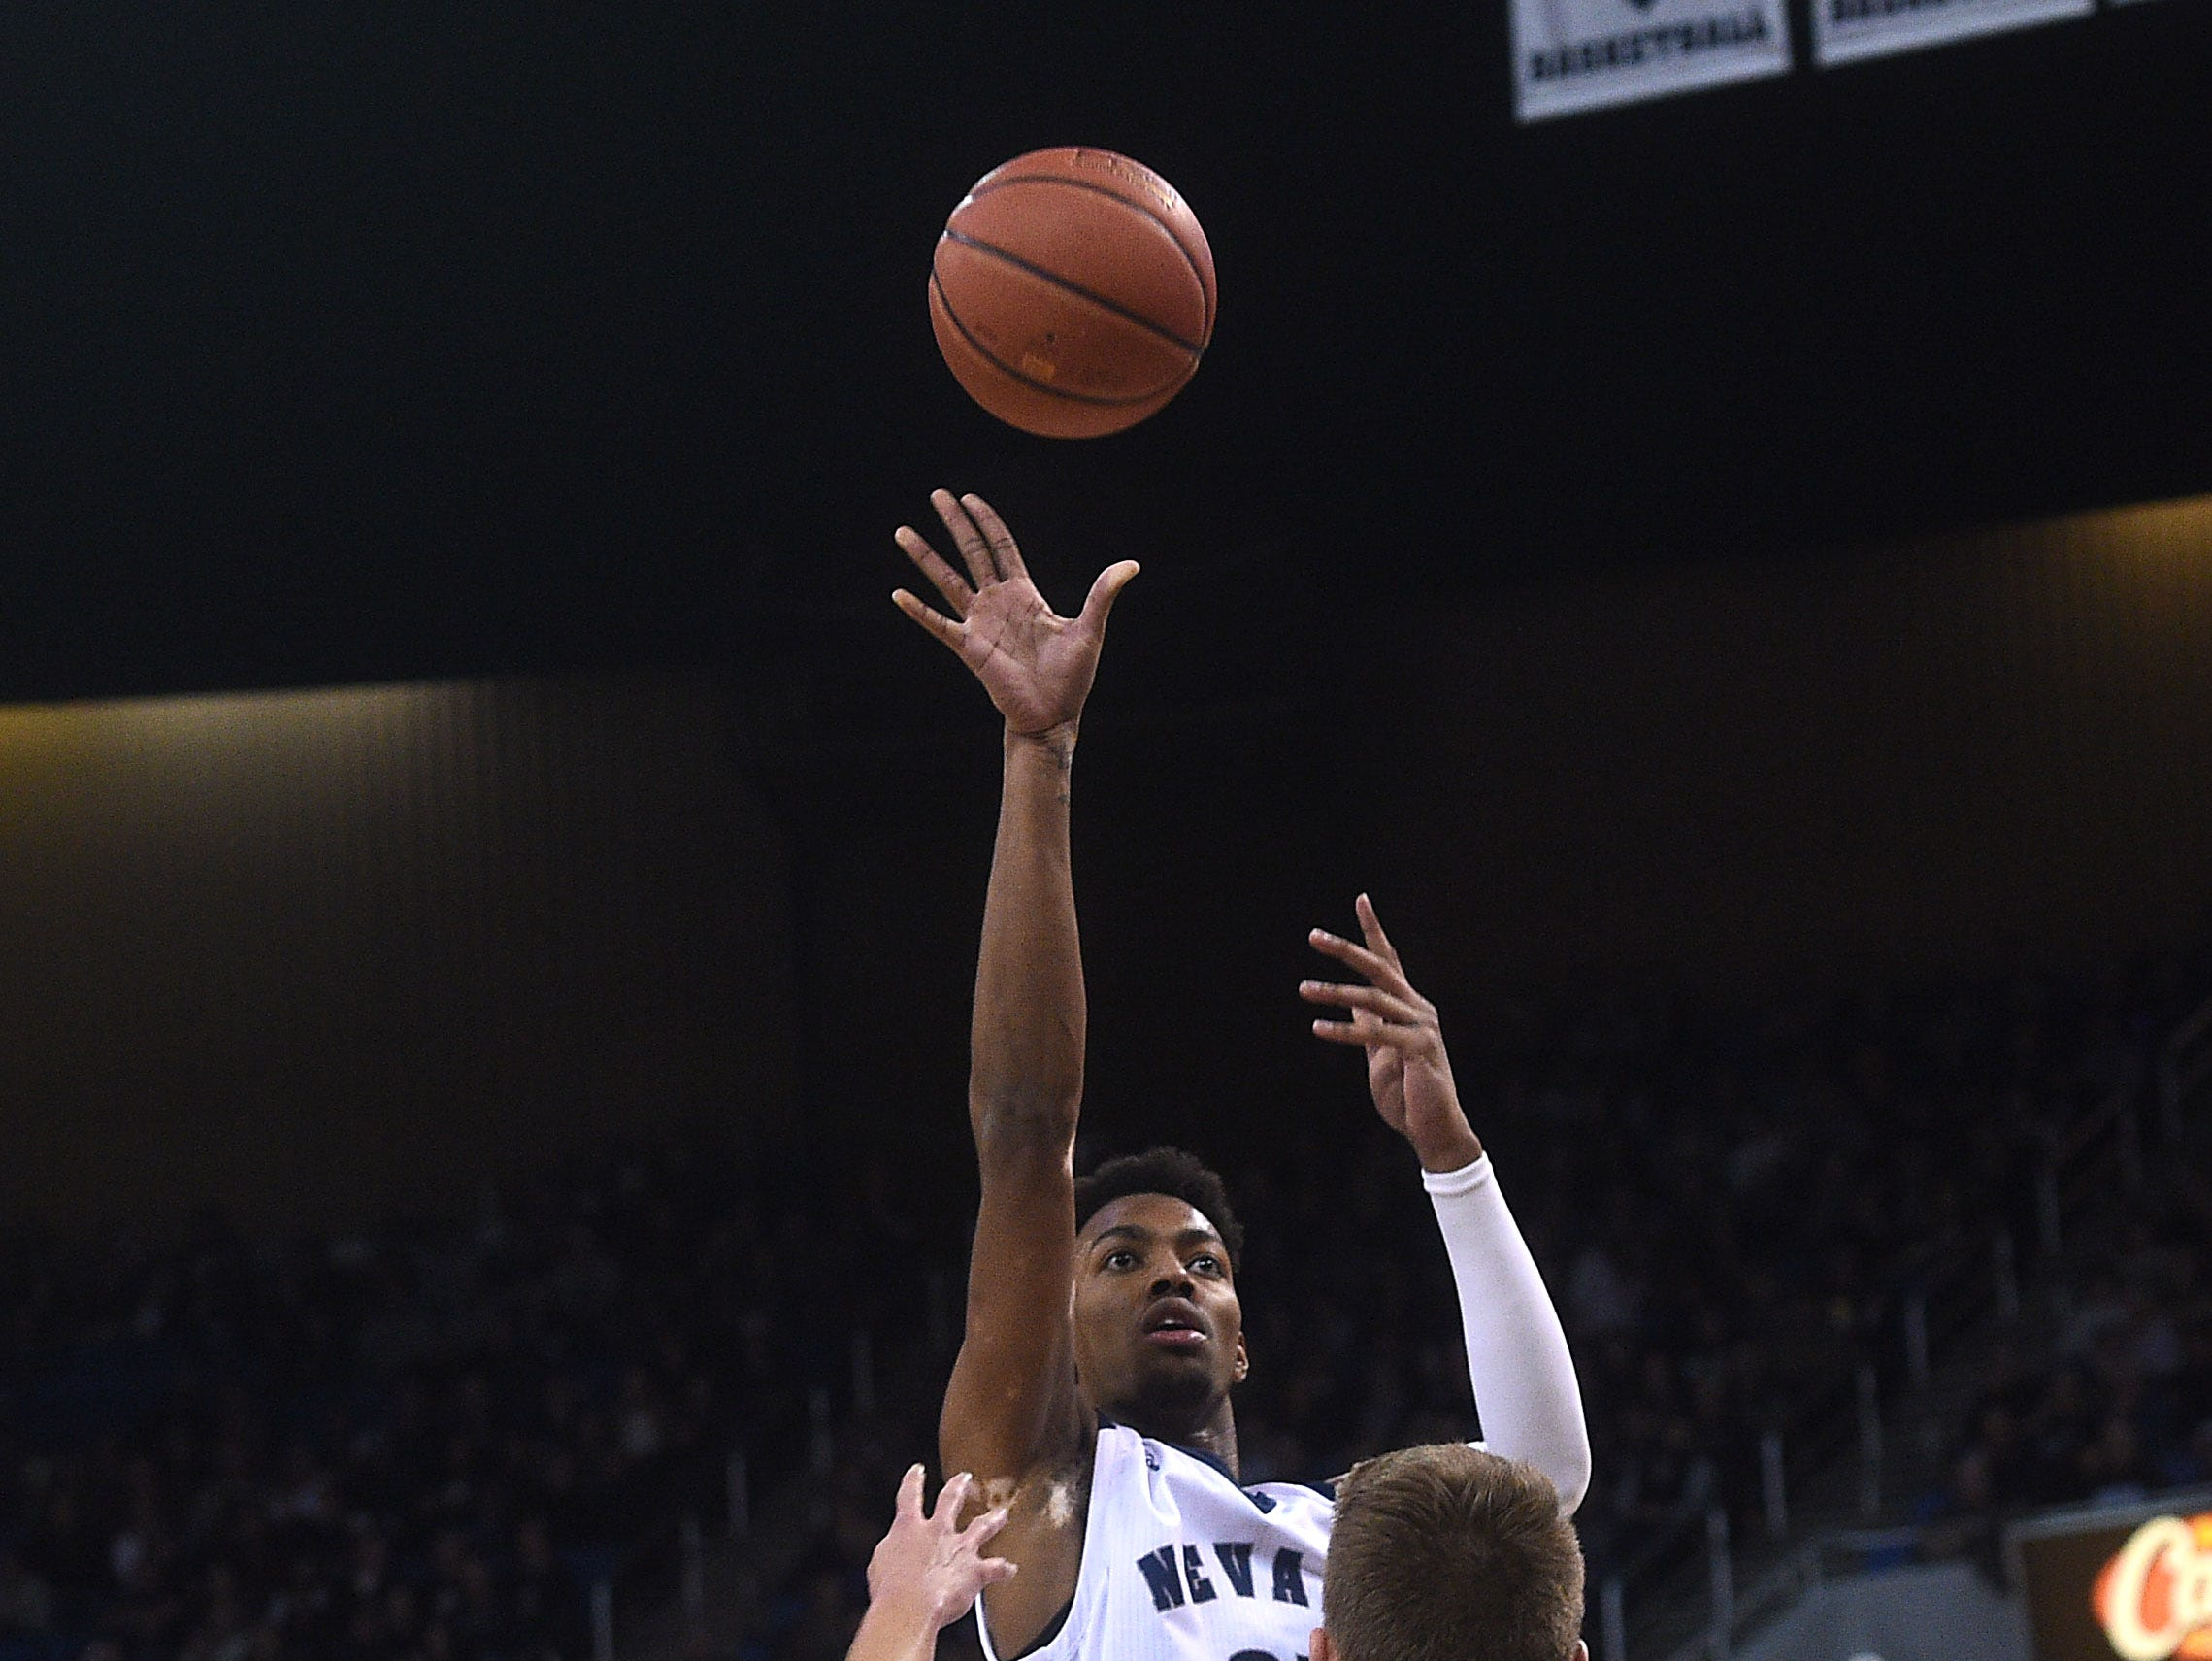 Nevada's Jordan Brown shoots while taking on San Jose State during their basketball game at Lawlor Events Center in Reno on Jan. 9, 2019.